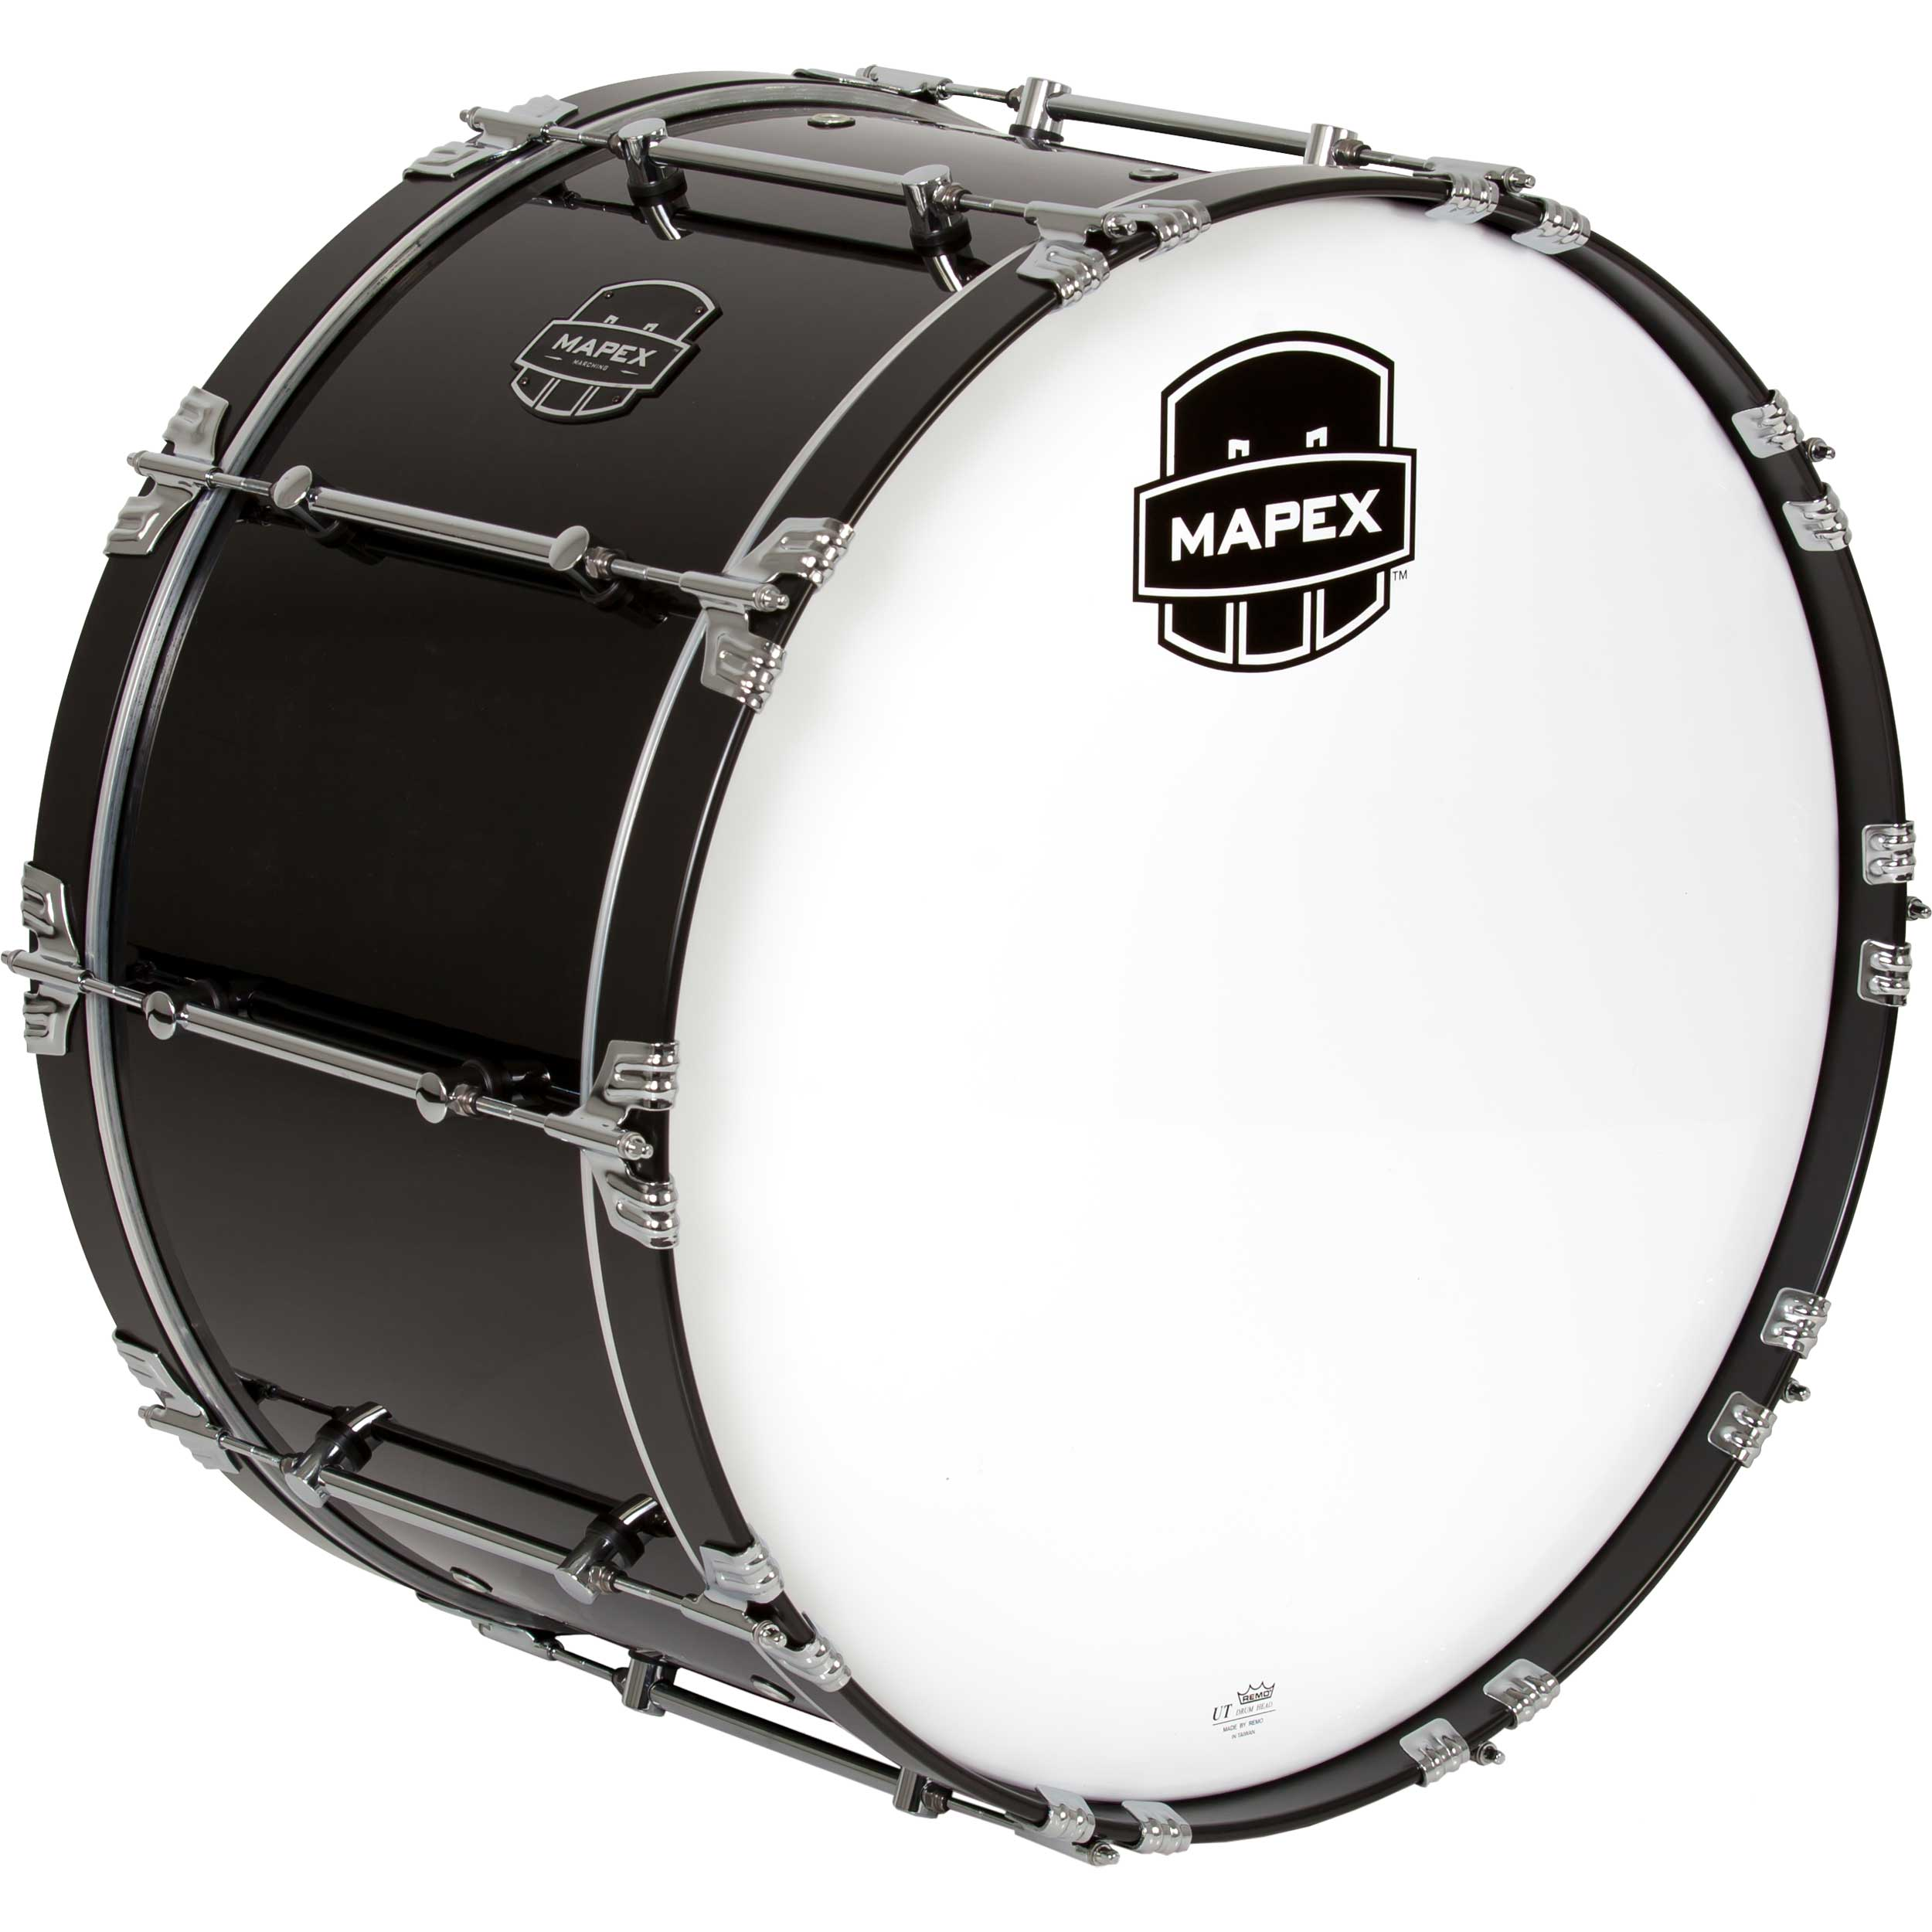 "Mapex 26"" Quantum Marching Bass Drum in Gloss Black"